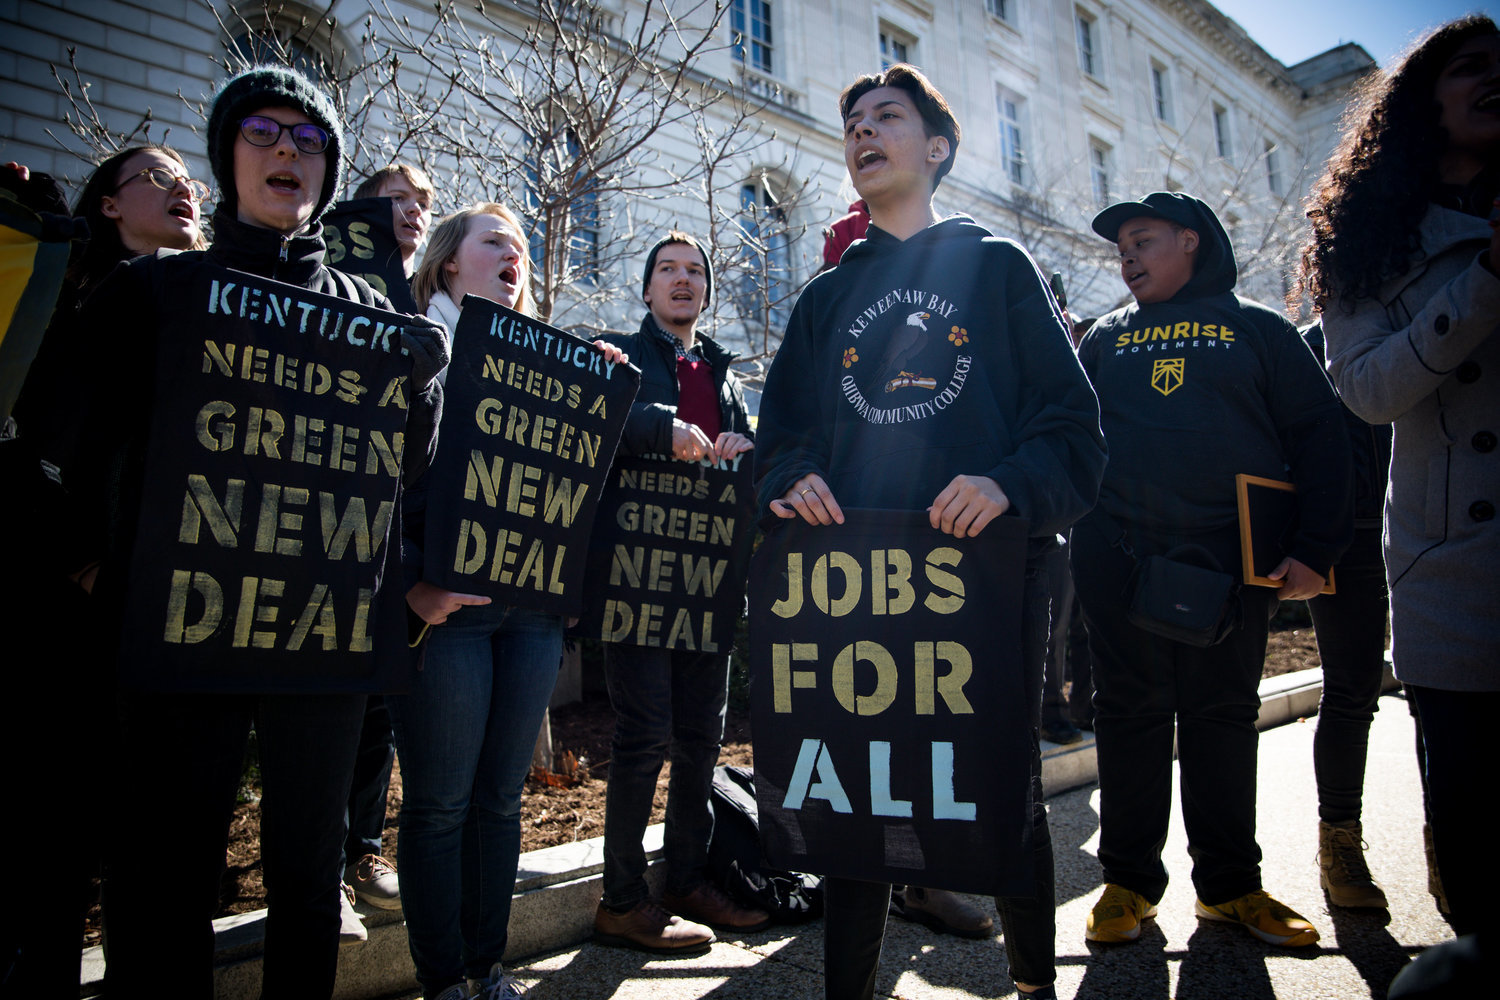 Protesters with placards with slogans including 'jobs for all', Kentucky needs a green new deal',